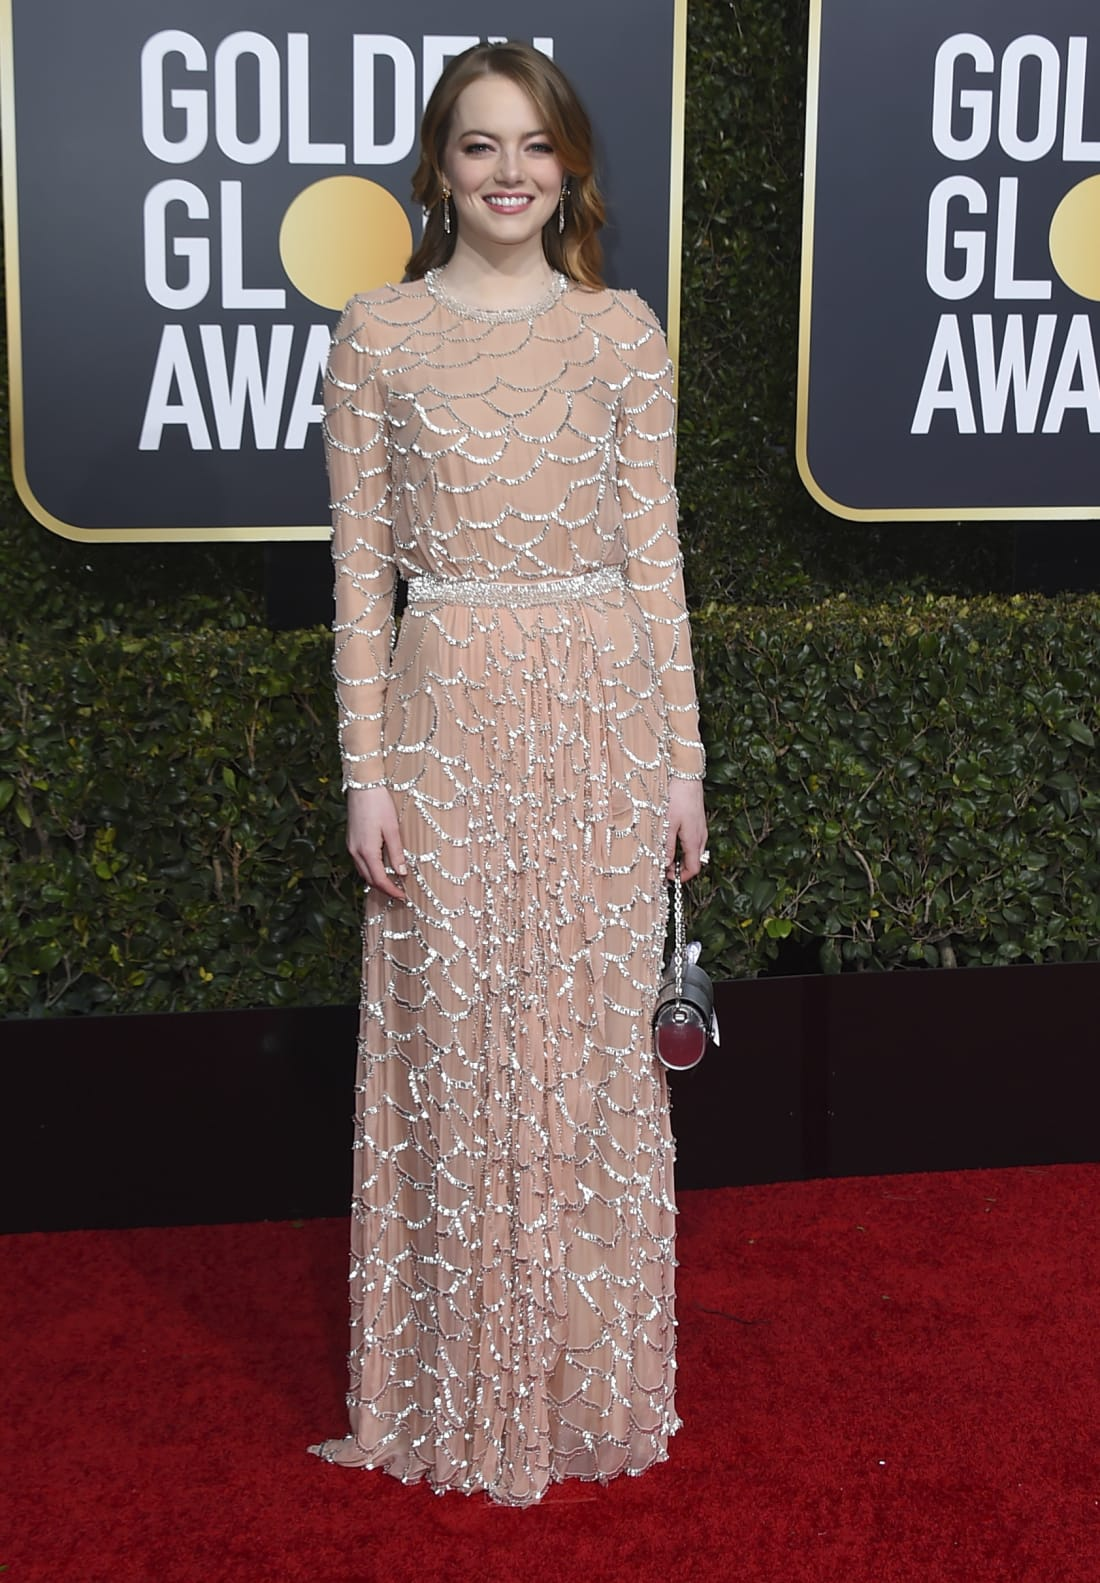 Emma Stone Nude Dress Golden Globes 2019